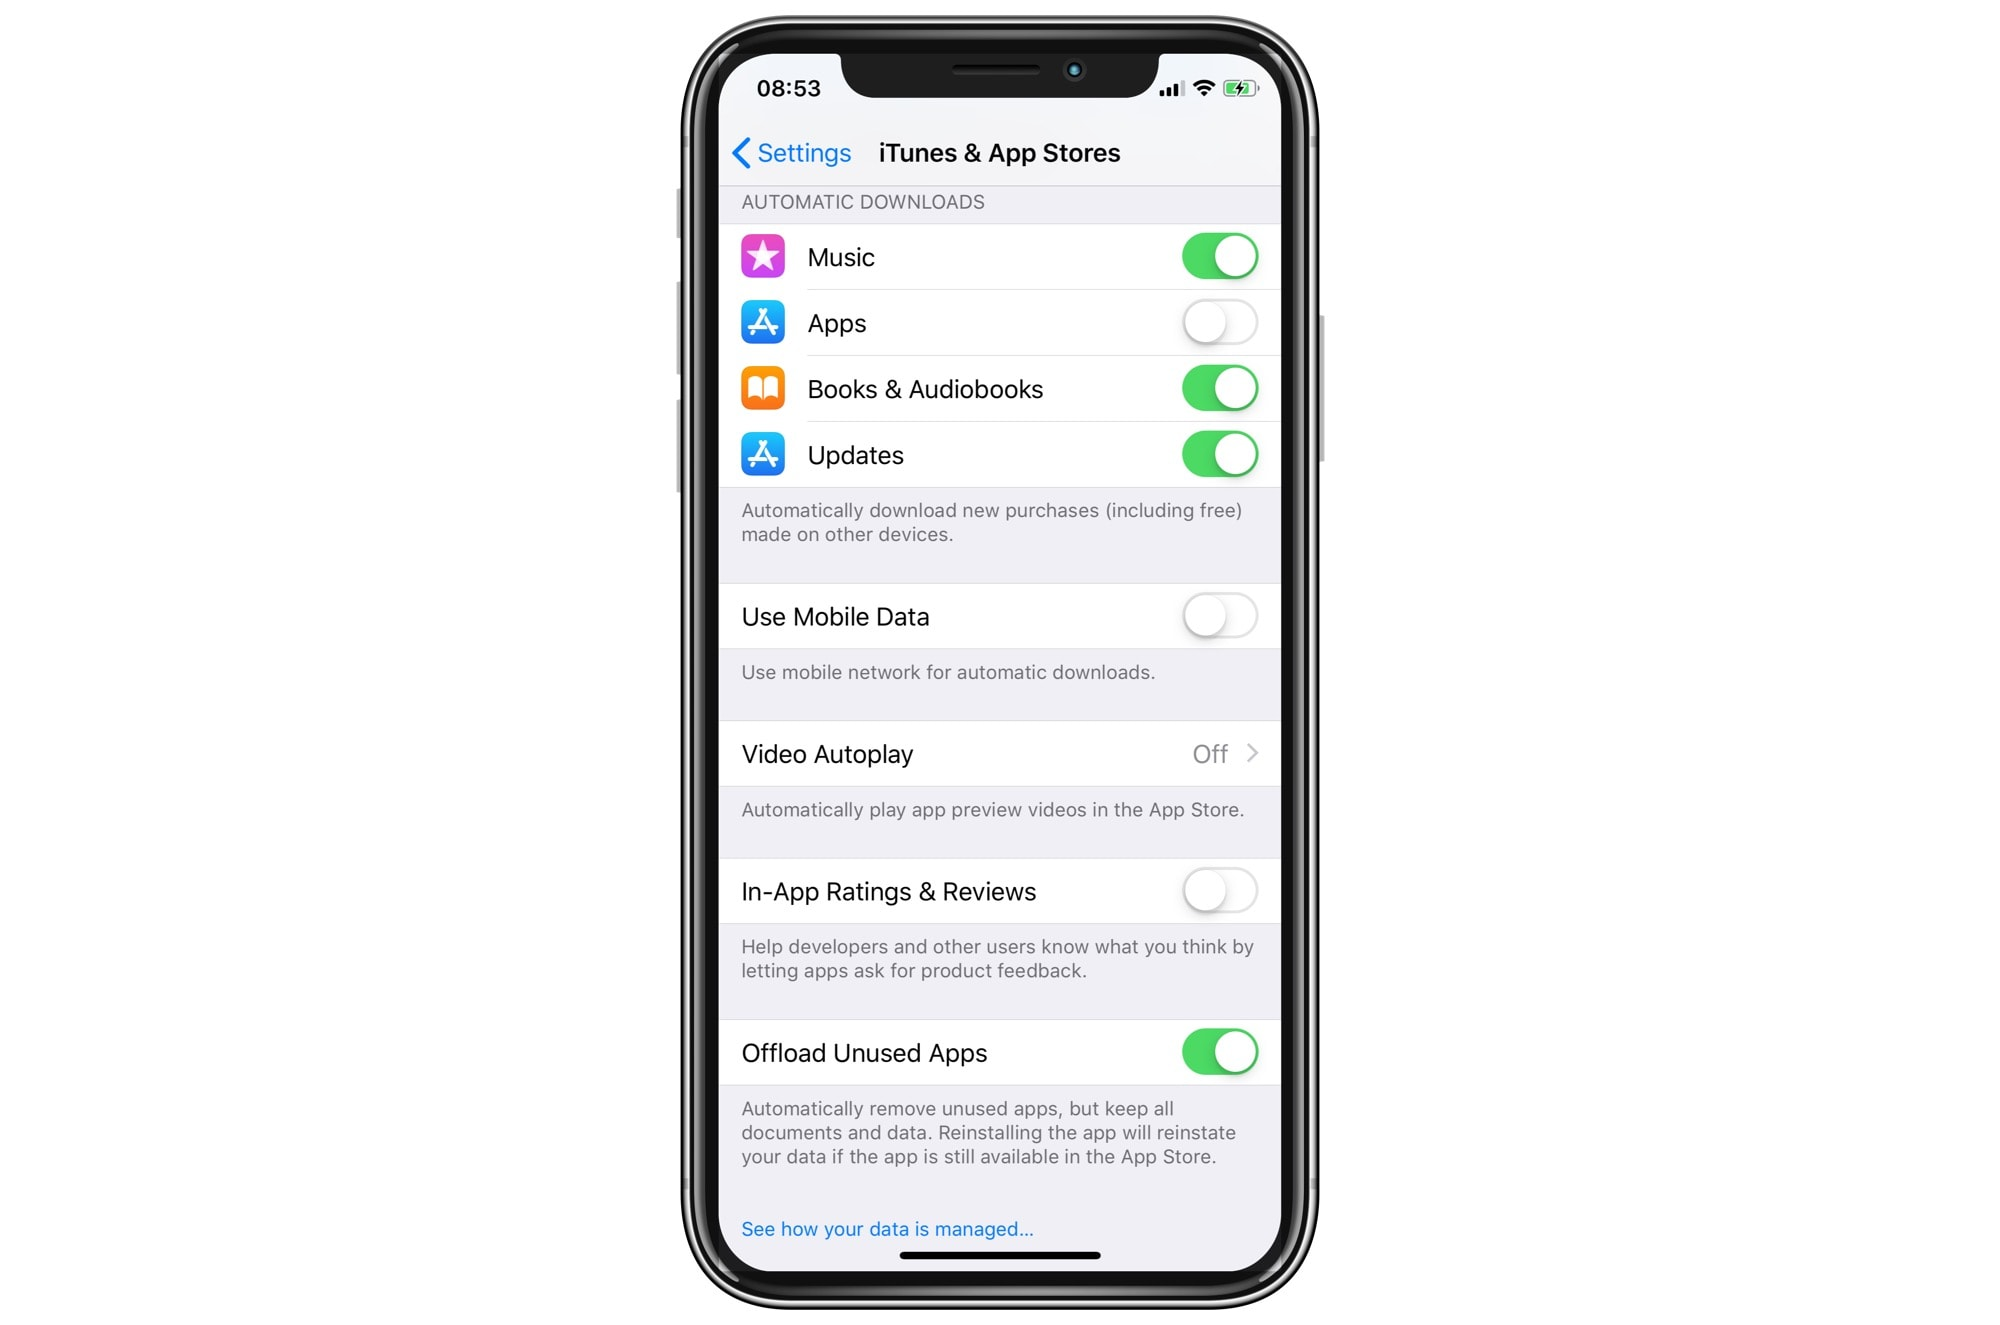 Restrict App Store updates to Wi-Fi to save data while traveling.